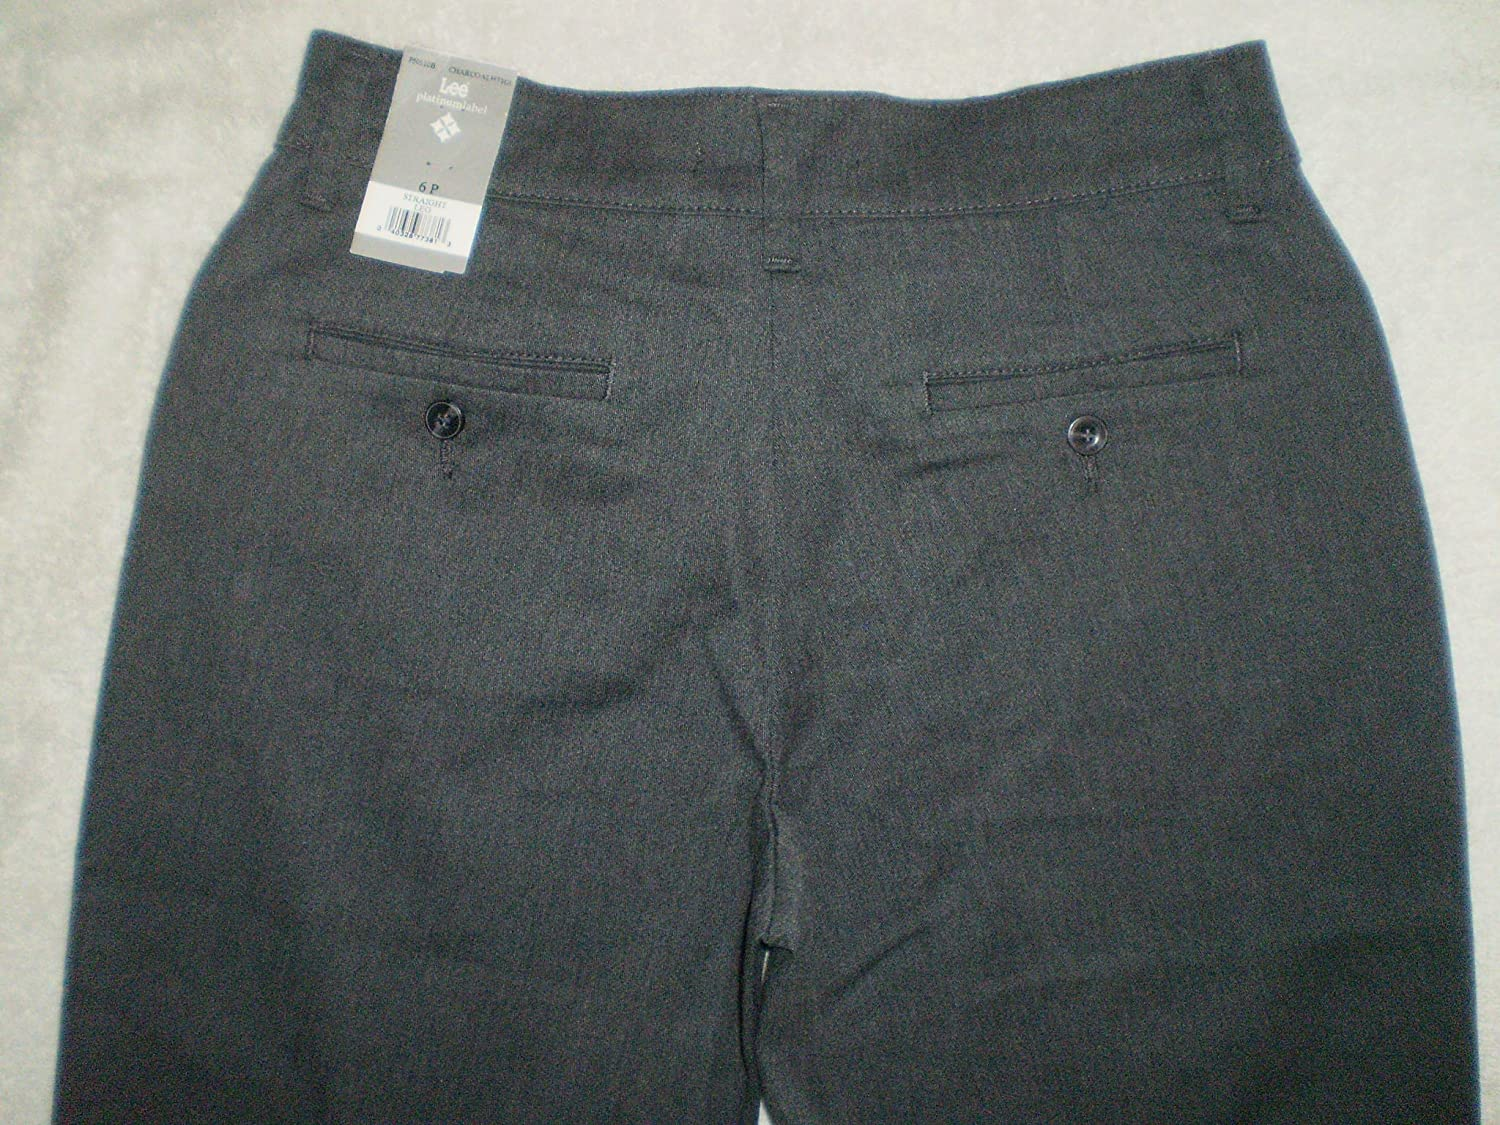 Lee Relaxed At Waist Straight Womens Stretch Charcoal Gray Pant Size 6P X 28 New